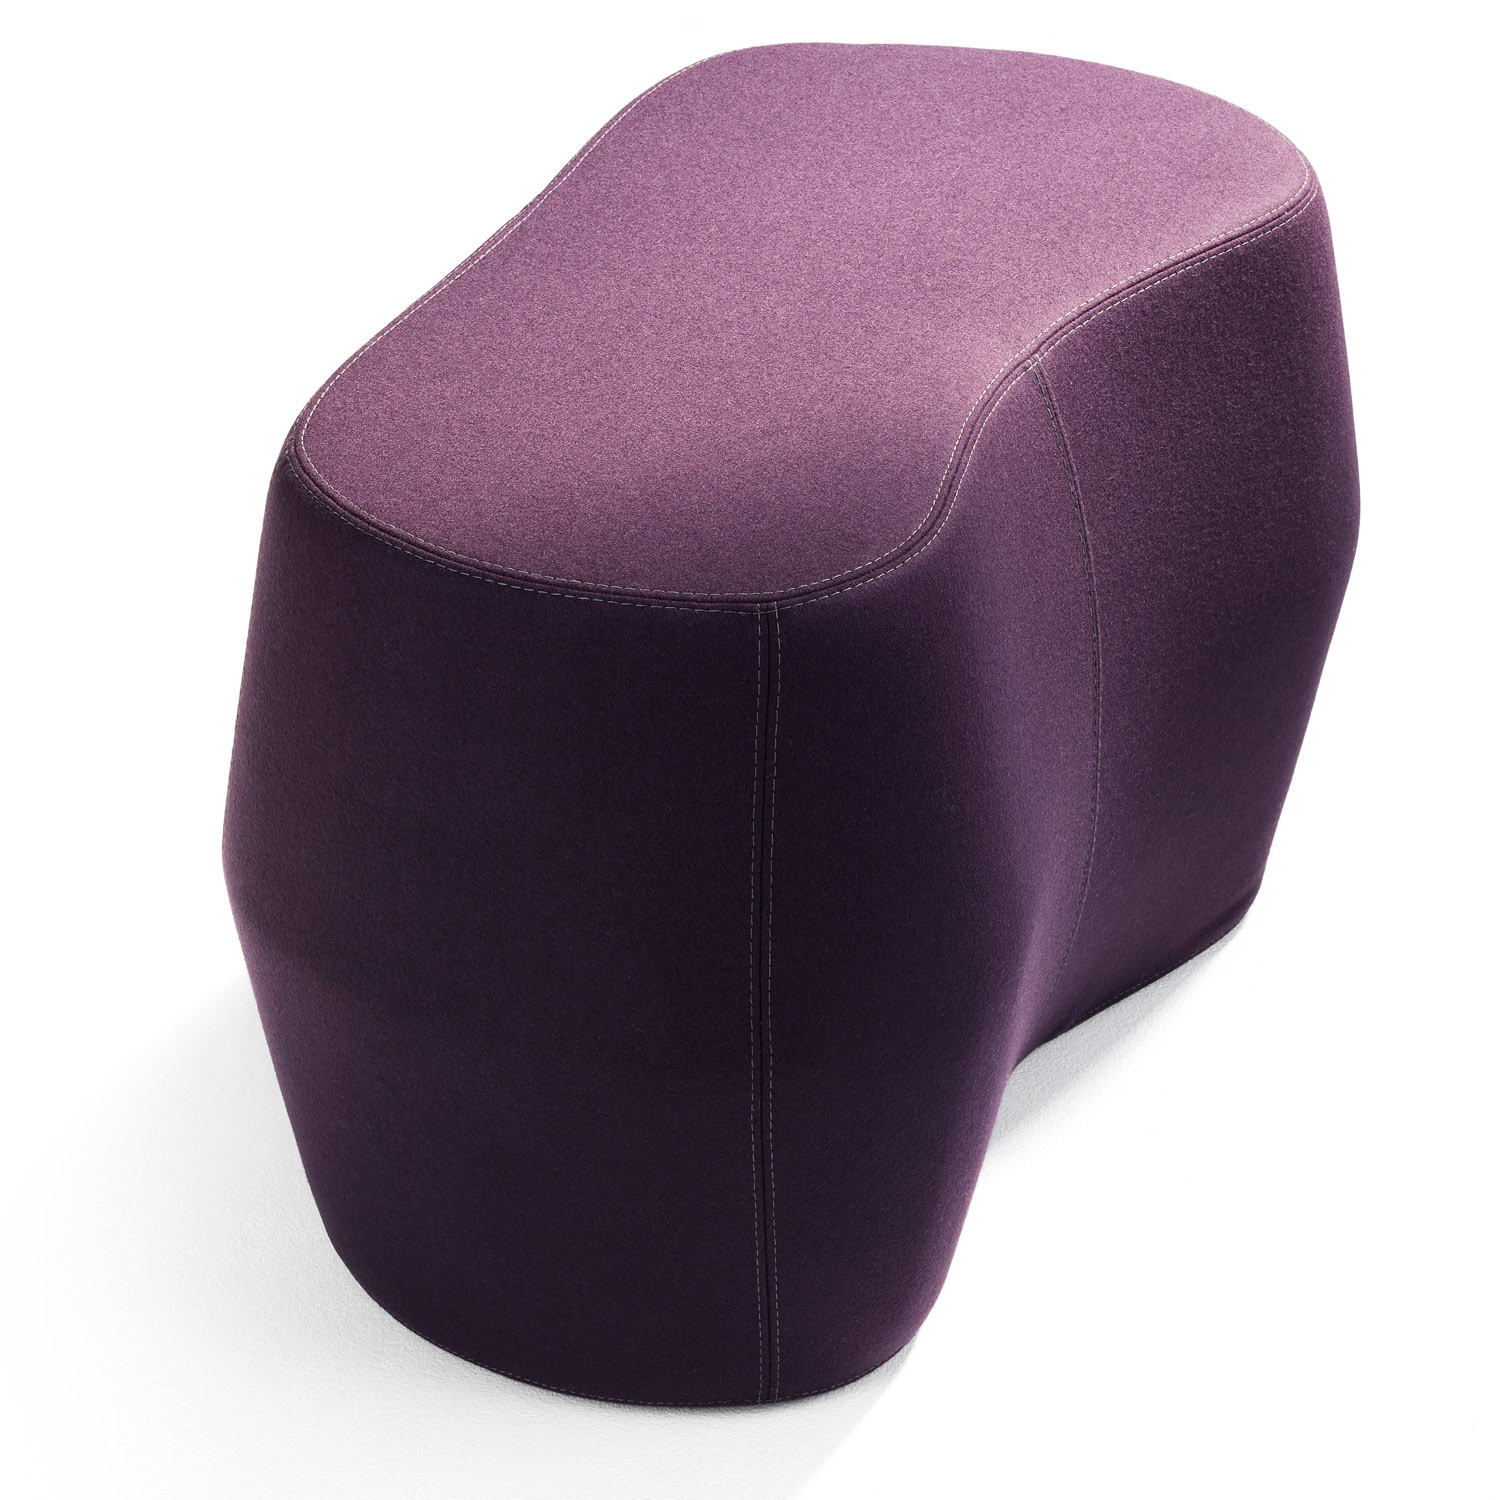 Rock'd Sitting Pouf